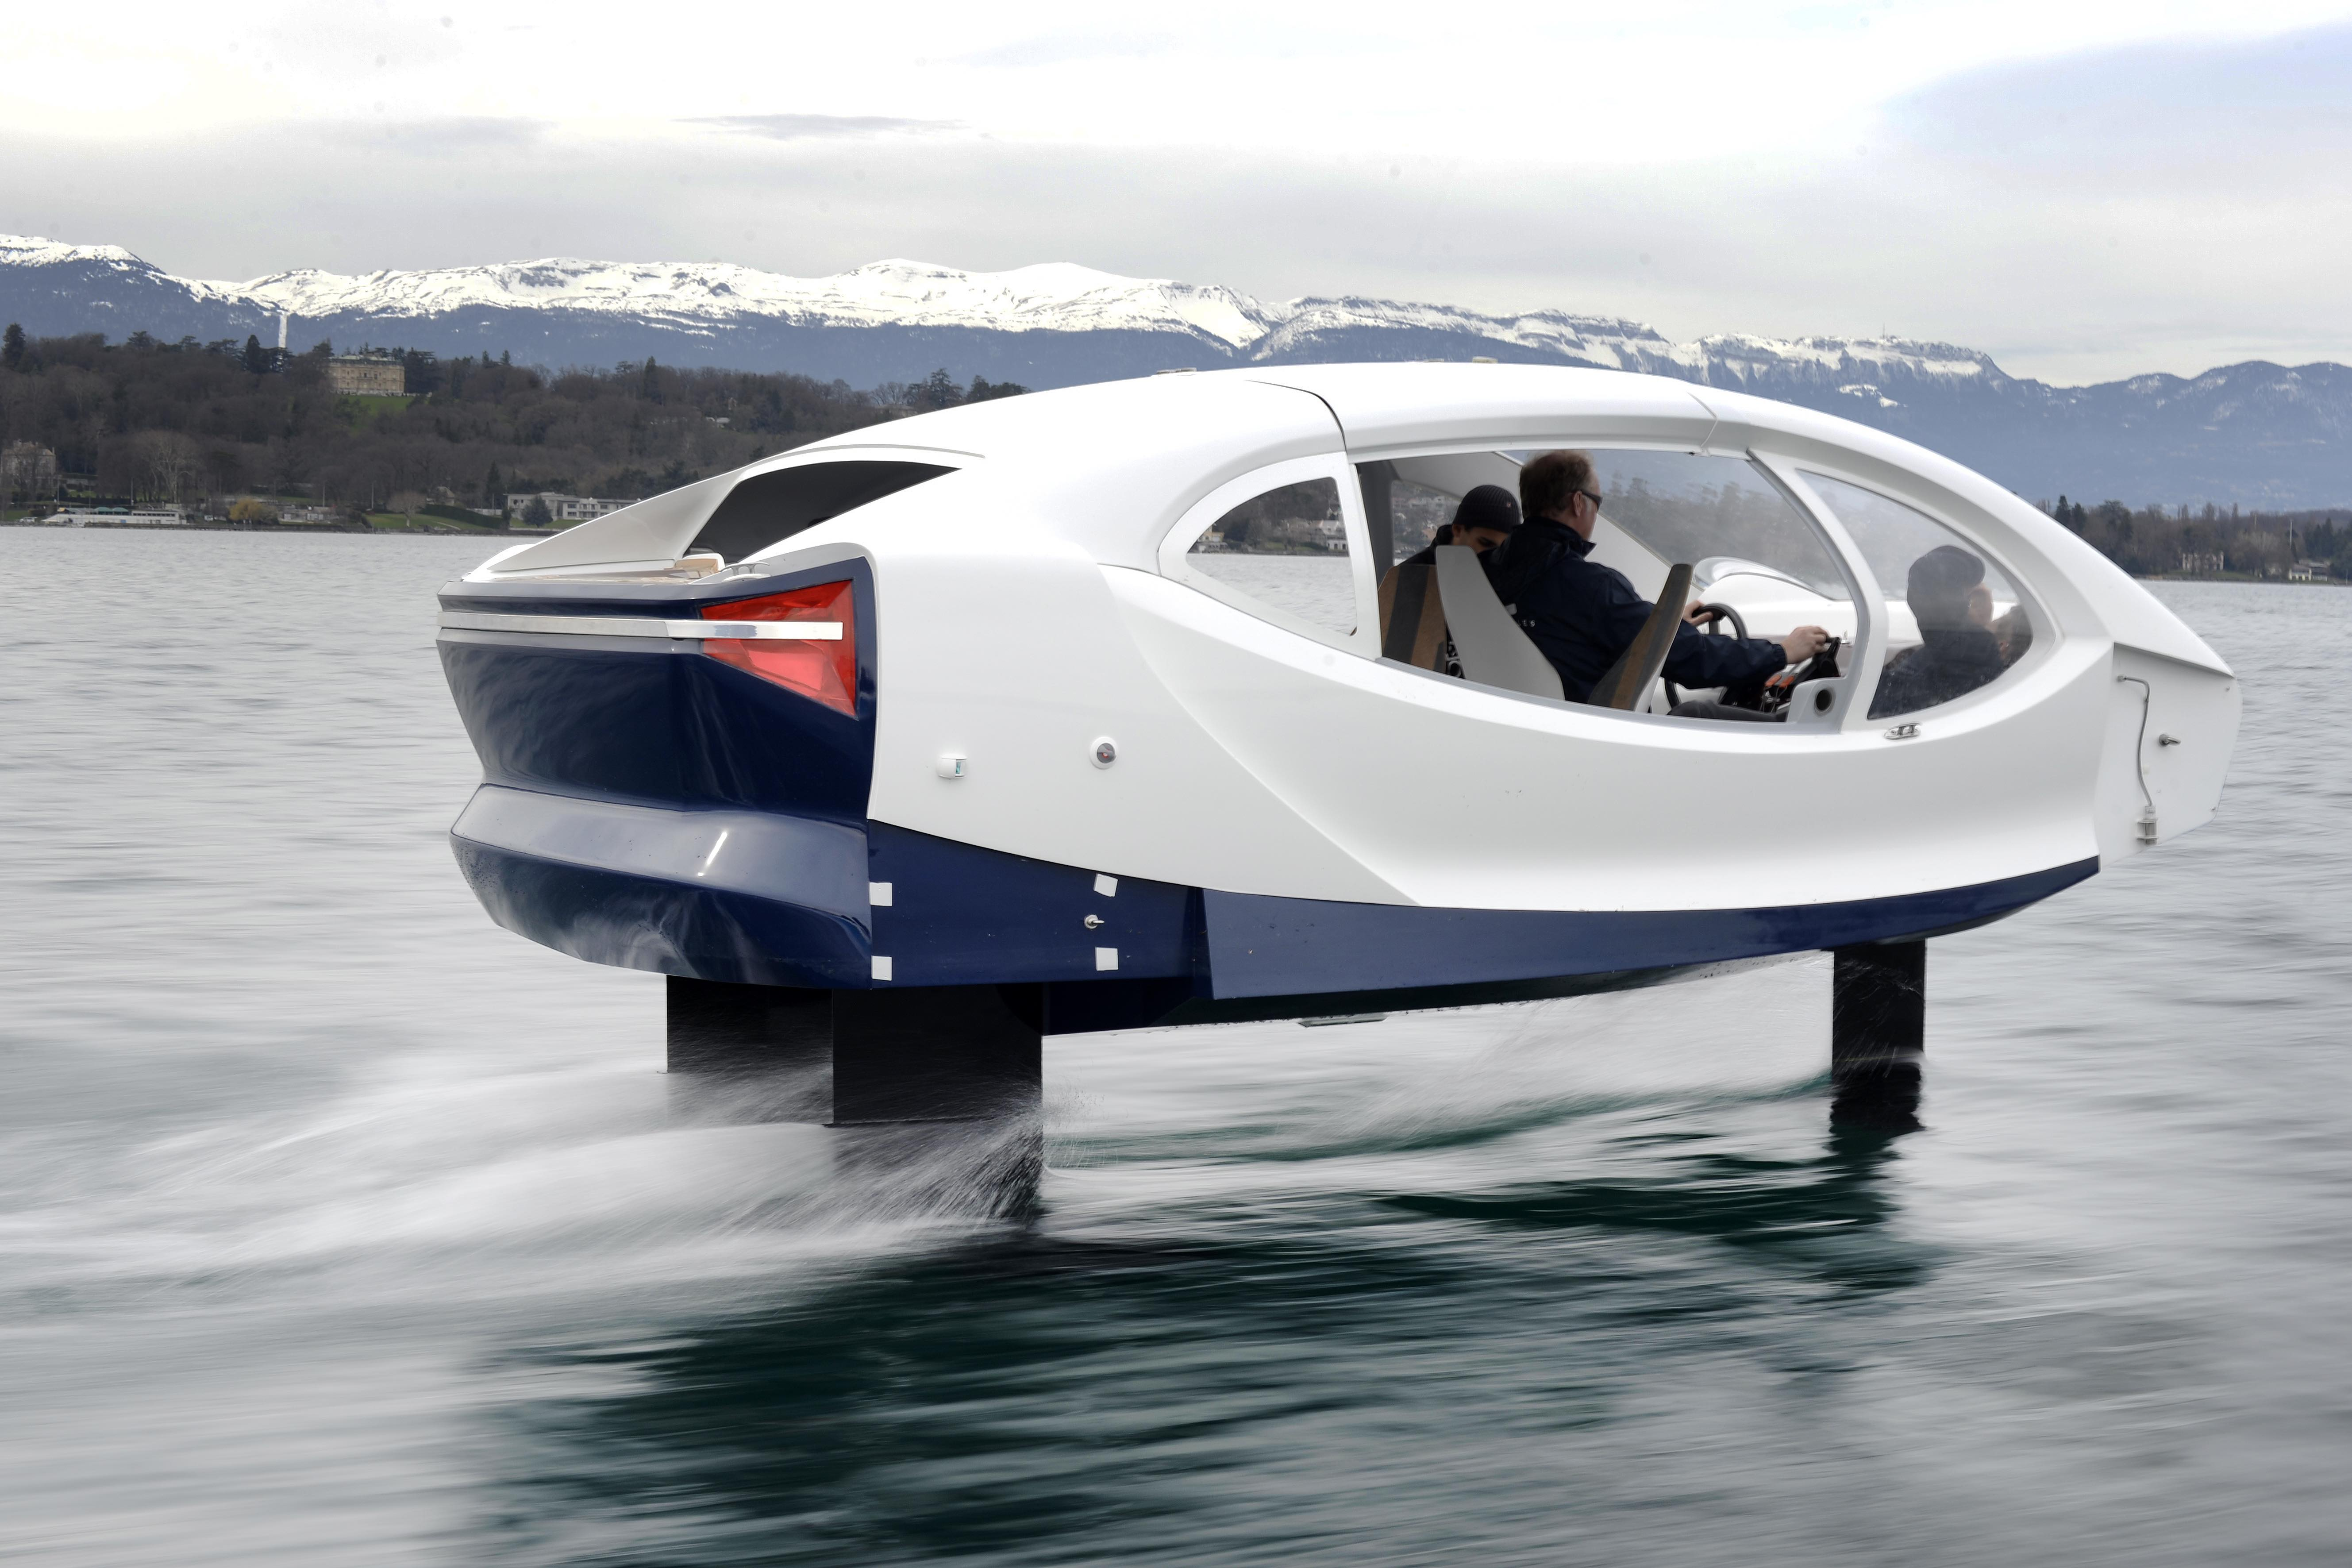 One of the SeaBubbles rises out of the water as it picks up speed